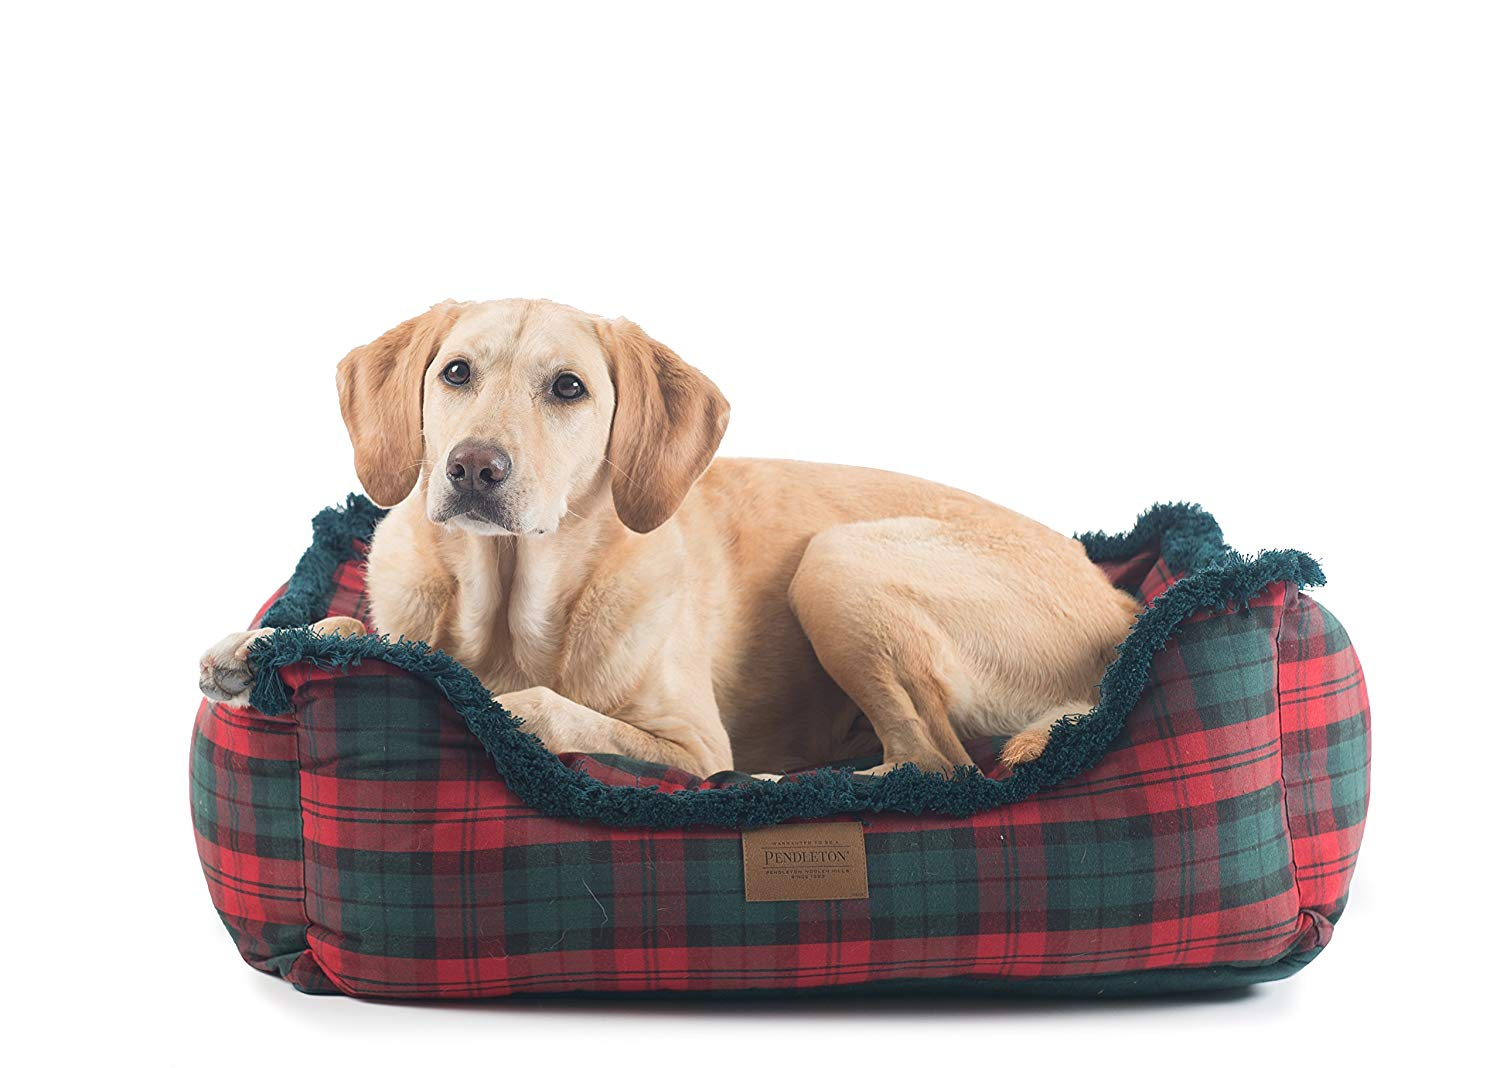 pendelton stylish attractive dog beds